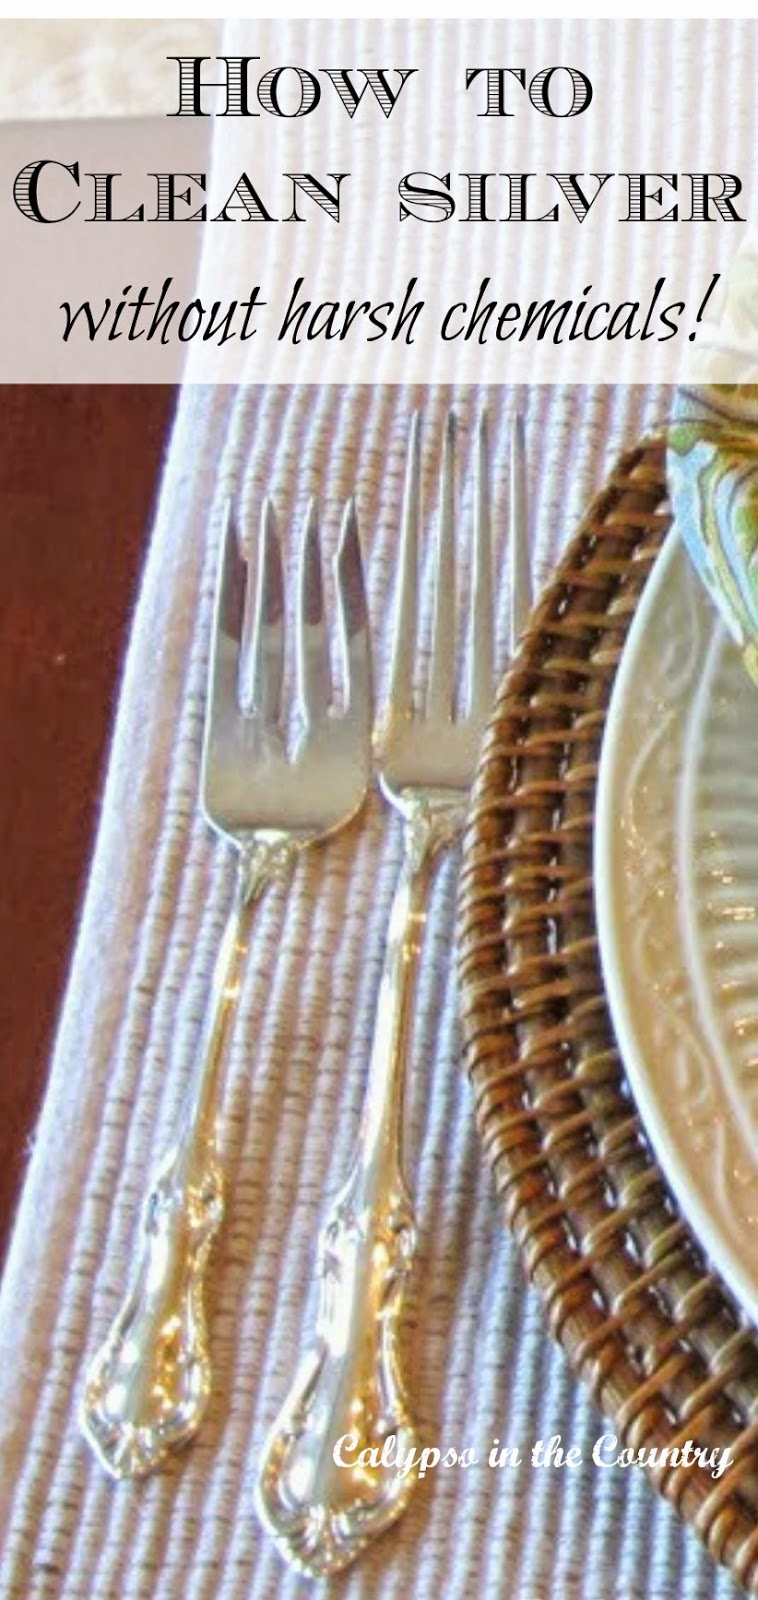 How to Clean Silver without harsh chemicals